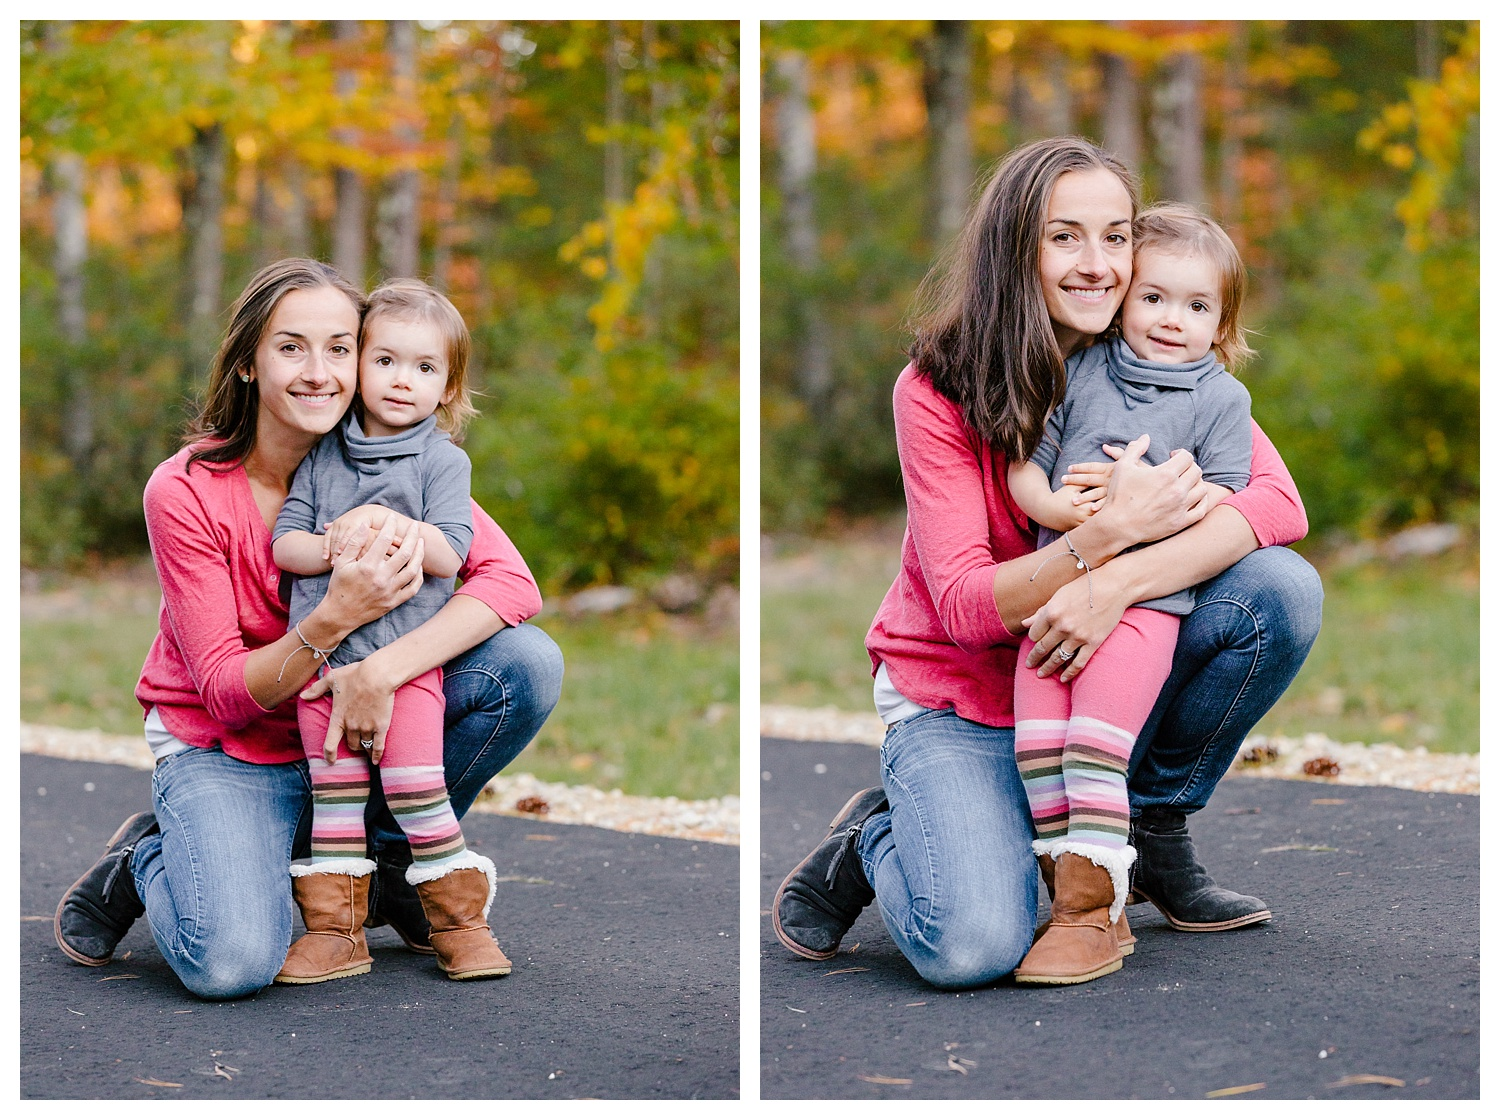 BLM,Brianna Morrissey,Brie Morrissey,Candid,Family Photography,Family Portraits,Lifestyle,Lifestyle Family Photography,Natural Light,Oct,October,Outdoor Photography,Photo,Photographer,Photography,Soleau-Family,www.blmphoto.com/contact,©BLM Photography 2017,